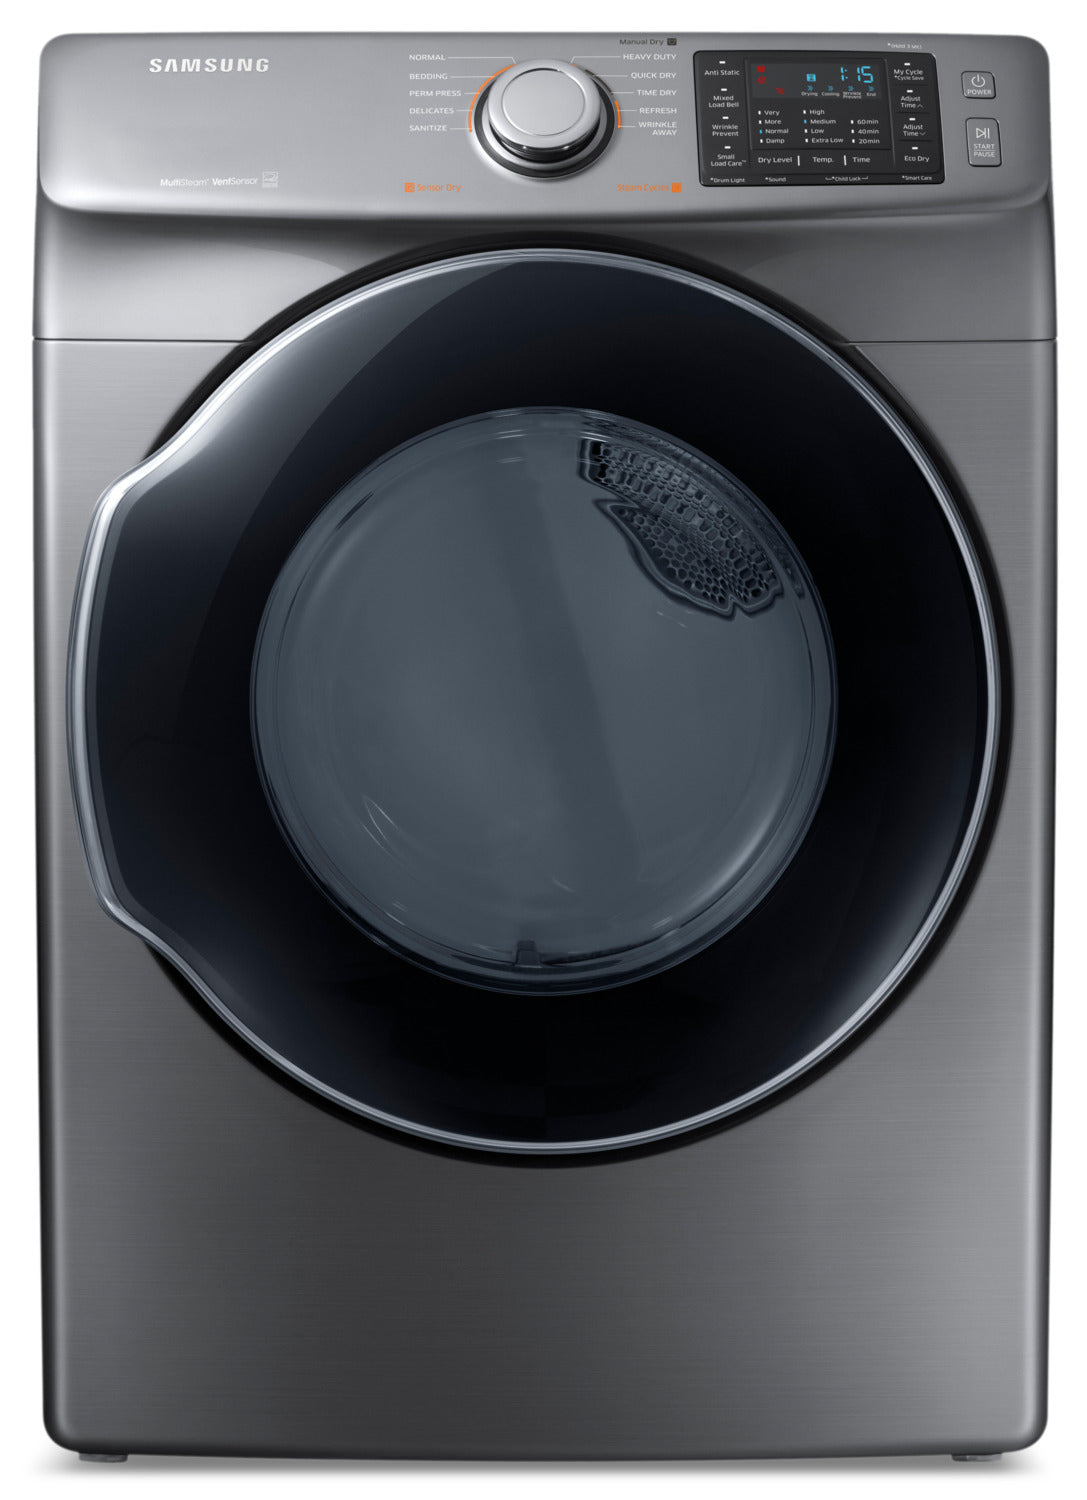 Samsung Platinum Electric Dryer (7 5 Cu  Ft) - DVE45M5500P/AC